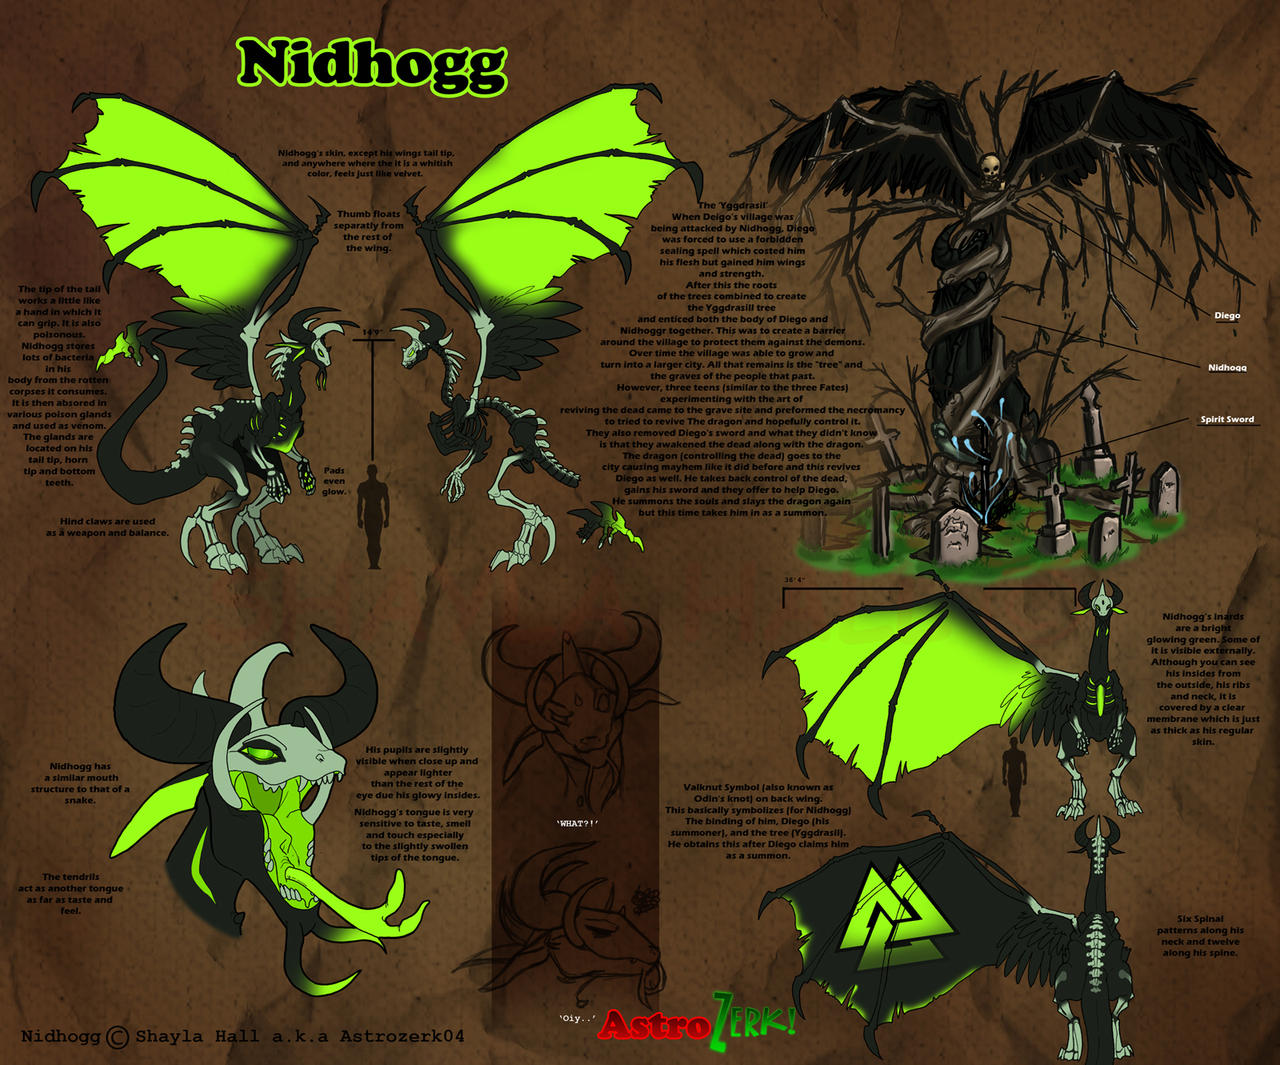 Nidhogg ref by AstroZerk on DeviantArt